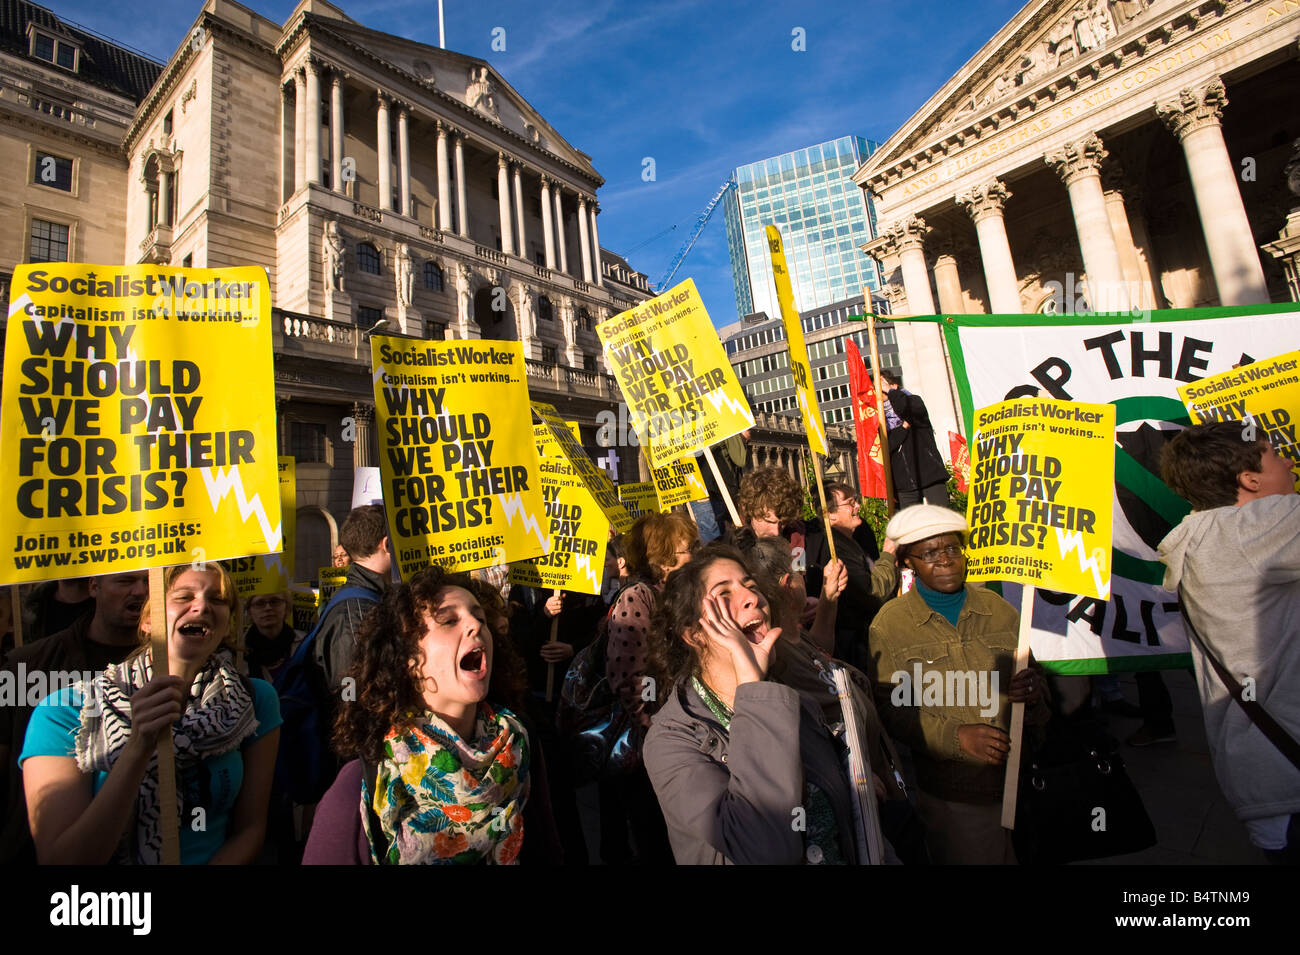 Socialist Workers Party demonstrating in the City of London against government bailing out banks Oct 2008 London - Stock Image